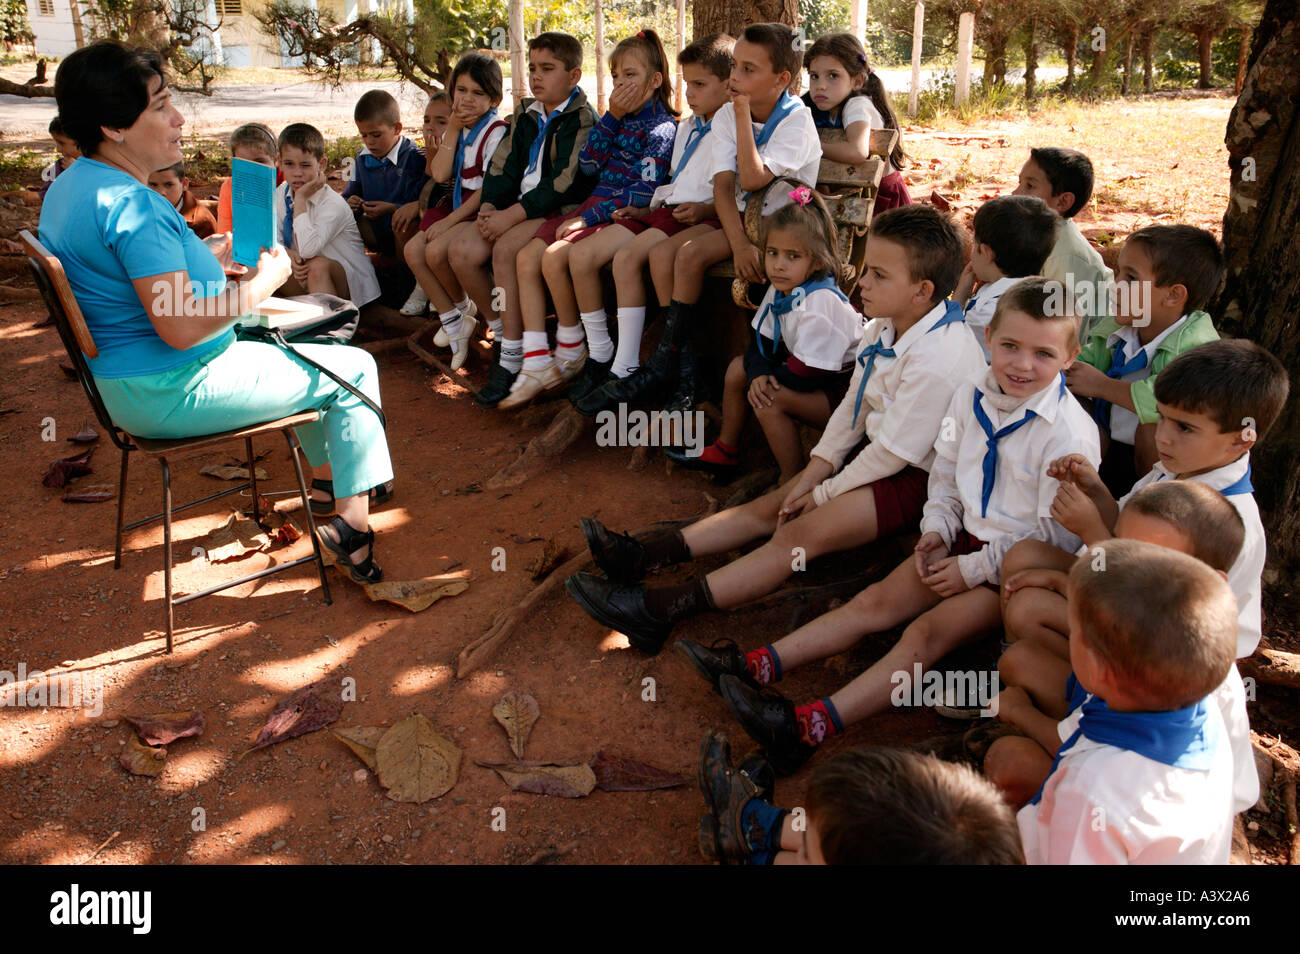 A school teacher with a class, Vinales valley, Pinar del Rio province, Cuba, West Indies. - Stock Image